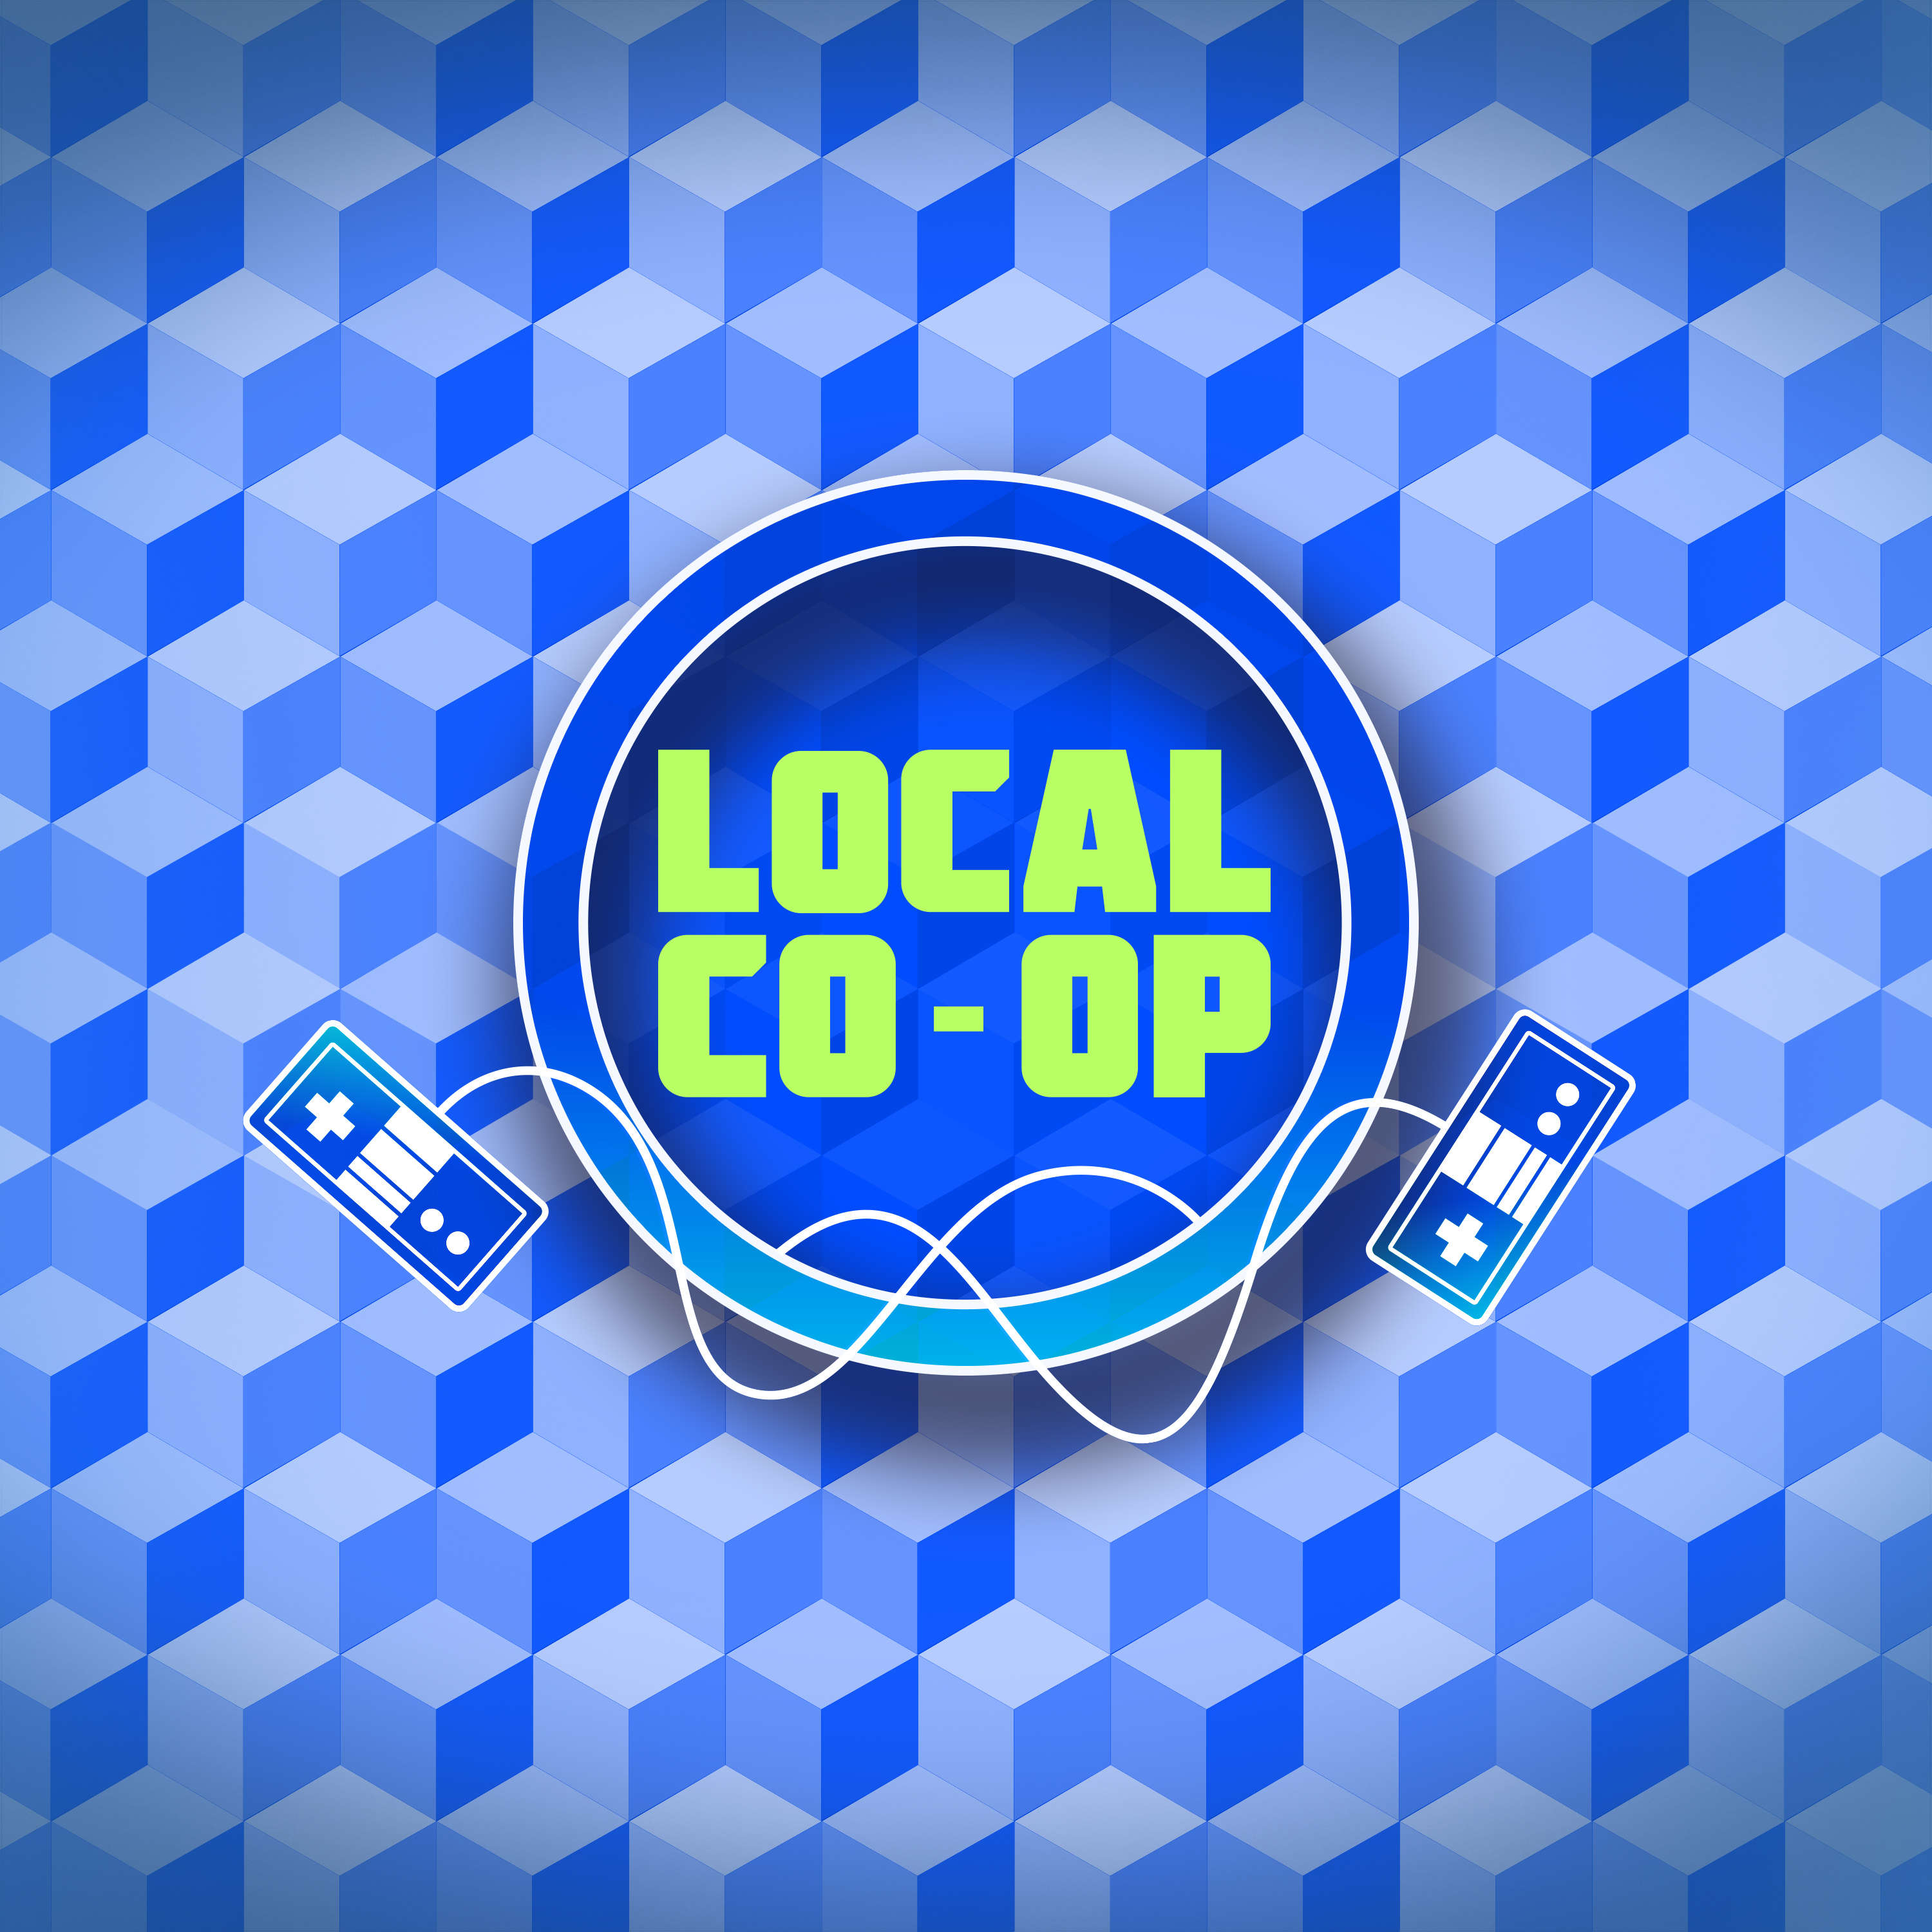 LOCAL CO-OP: Episode 6 - The Longer the Game, the Better?